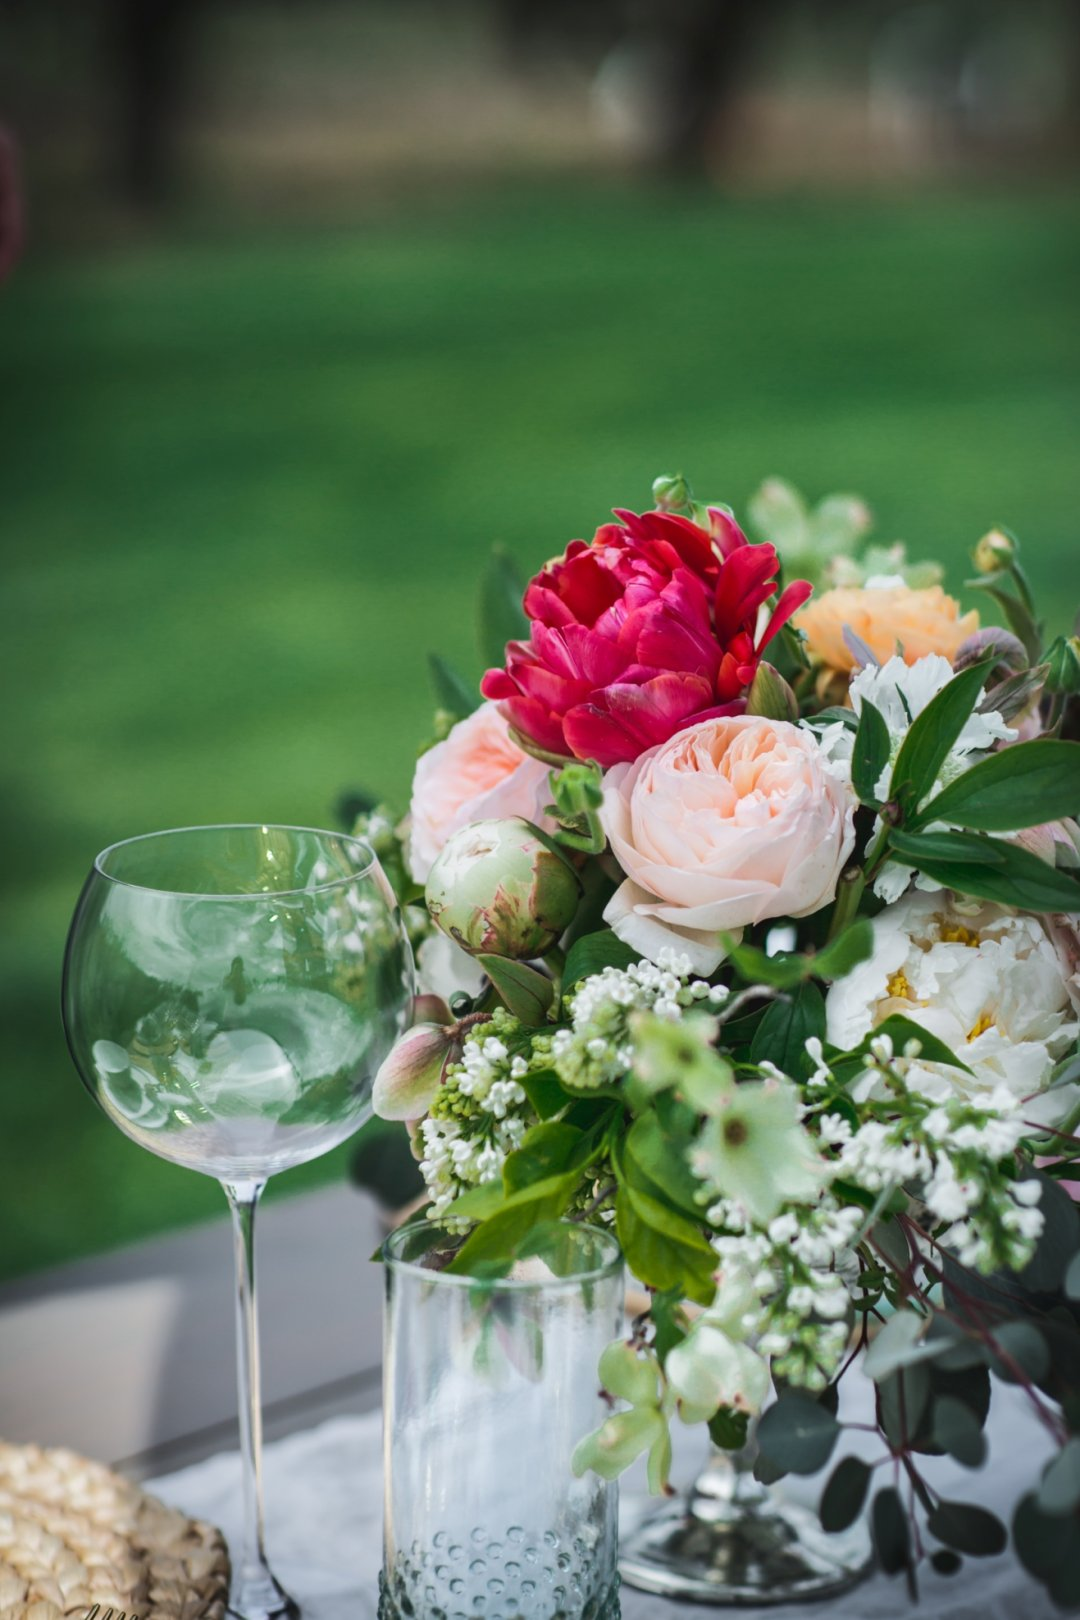 Wine glass and drinking glass next to centerpiece of flowers